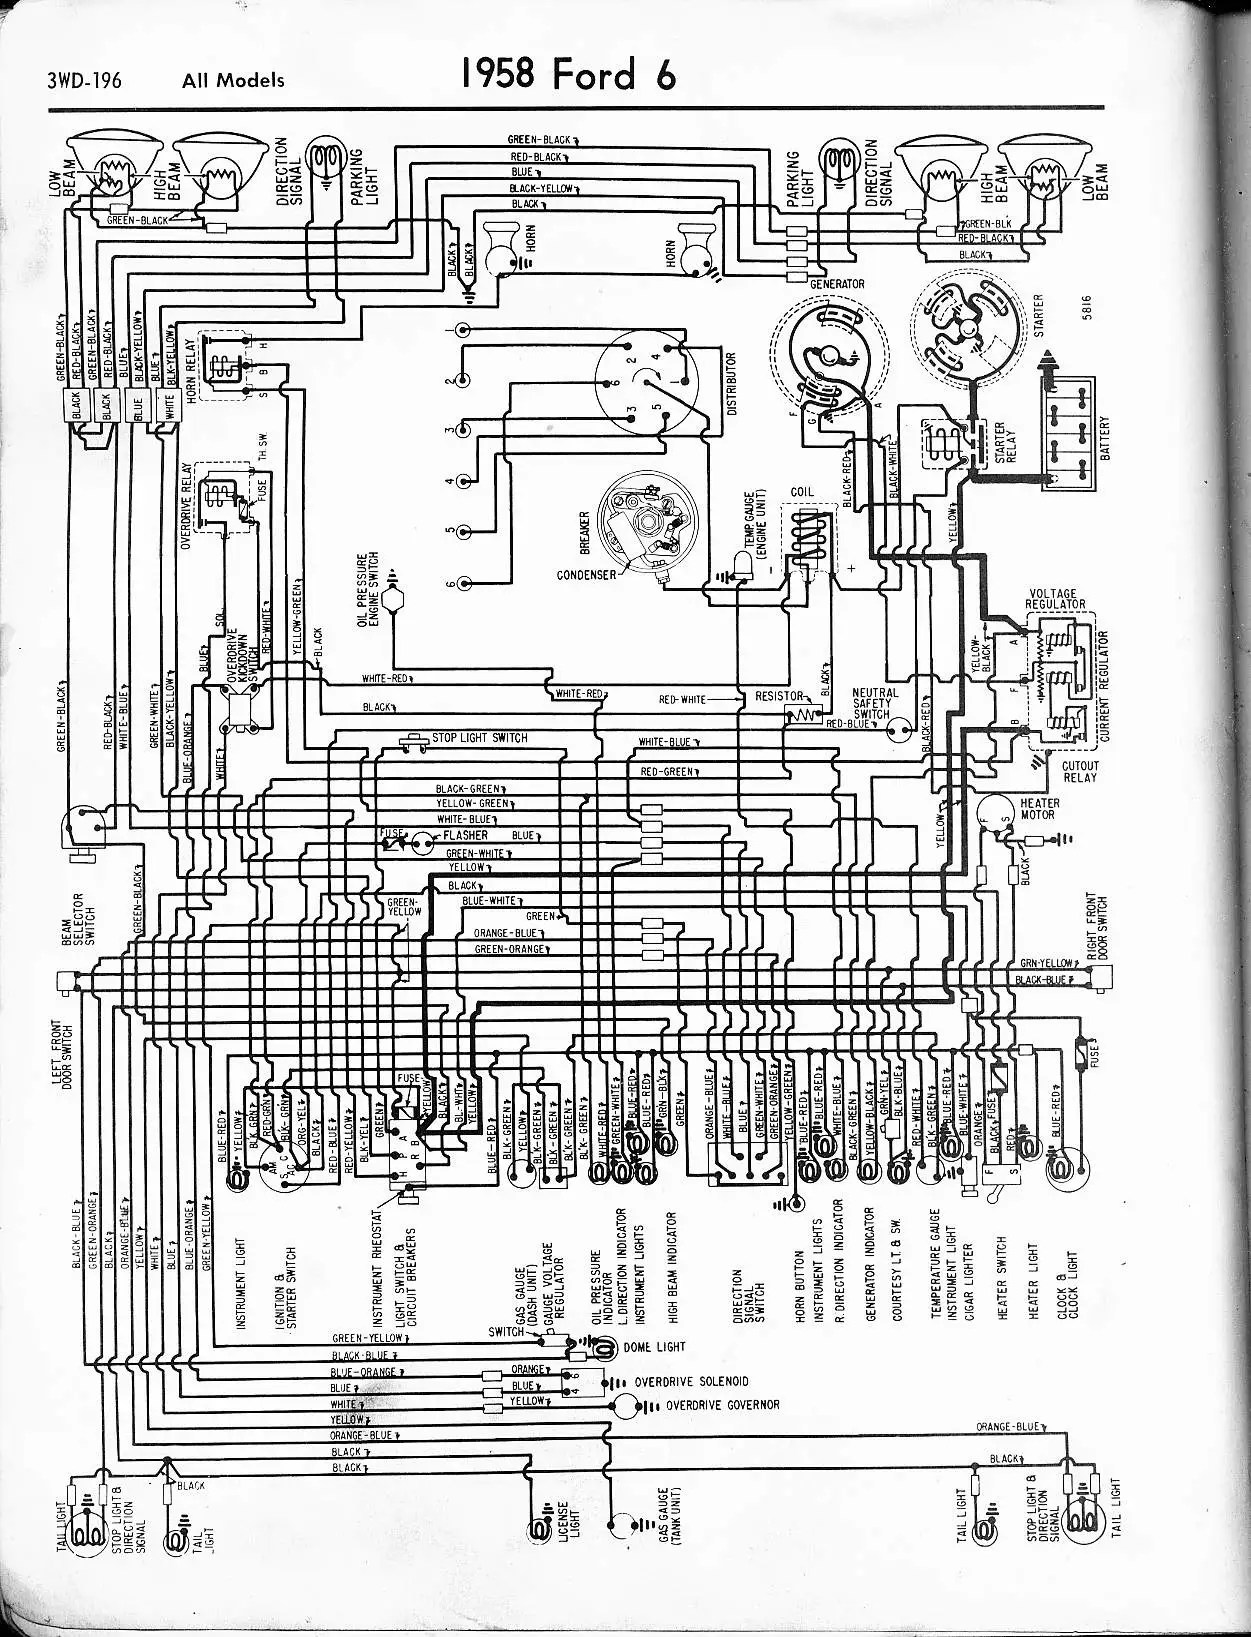 hight resolution of wiring diagram for 1966 ford f600 truck wiring diagram inside alternator wiring diagrams 1991 f600 ford